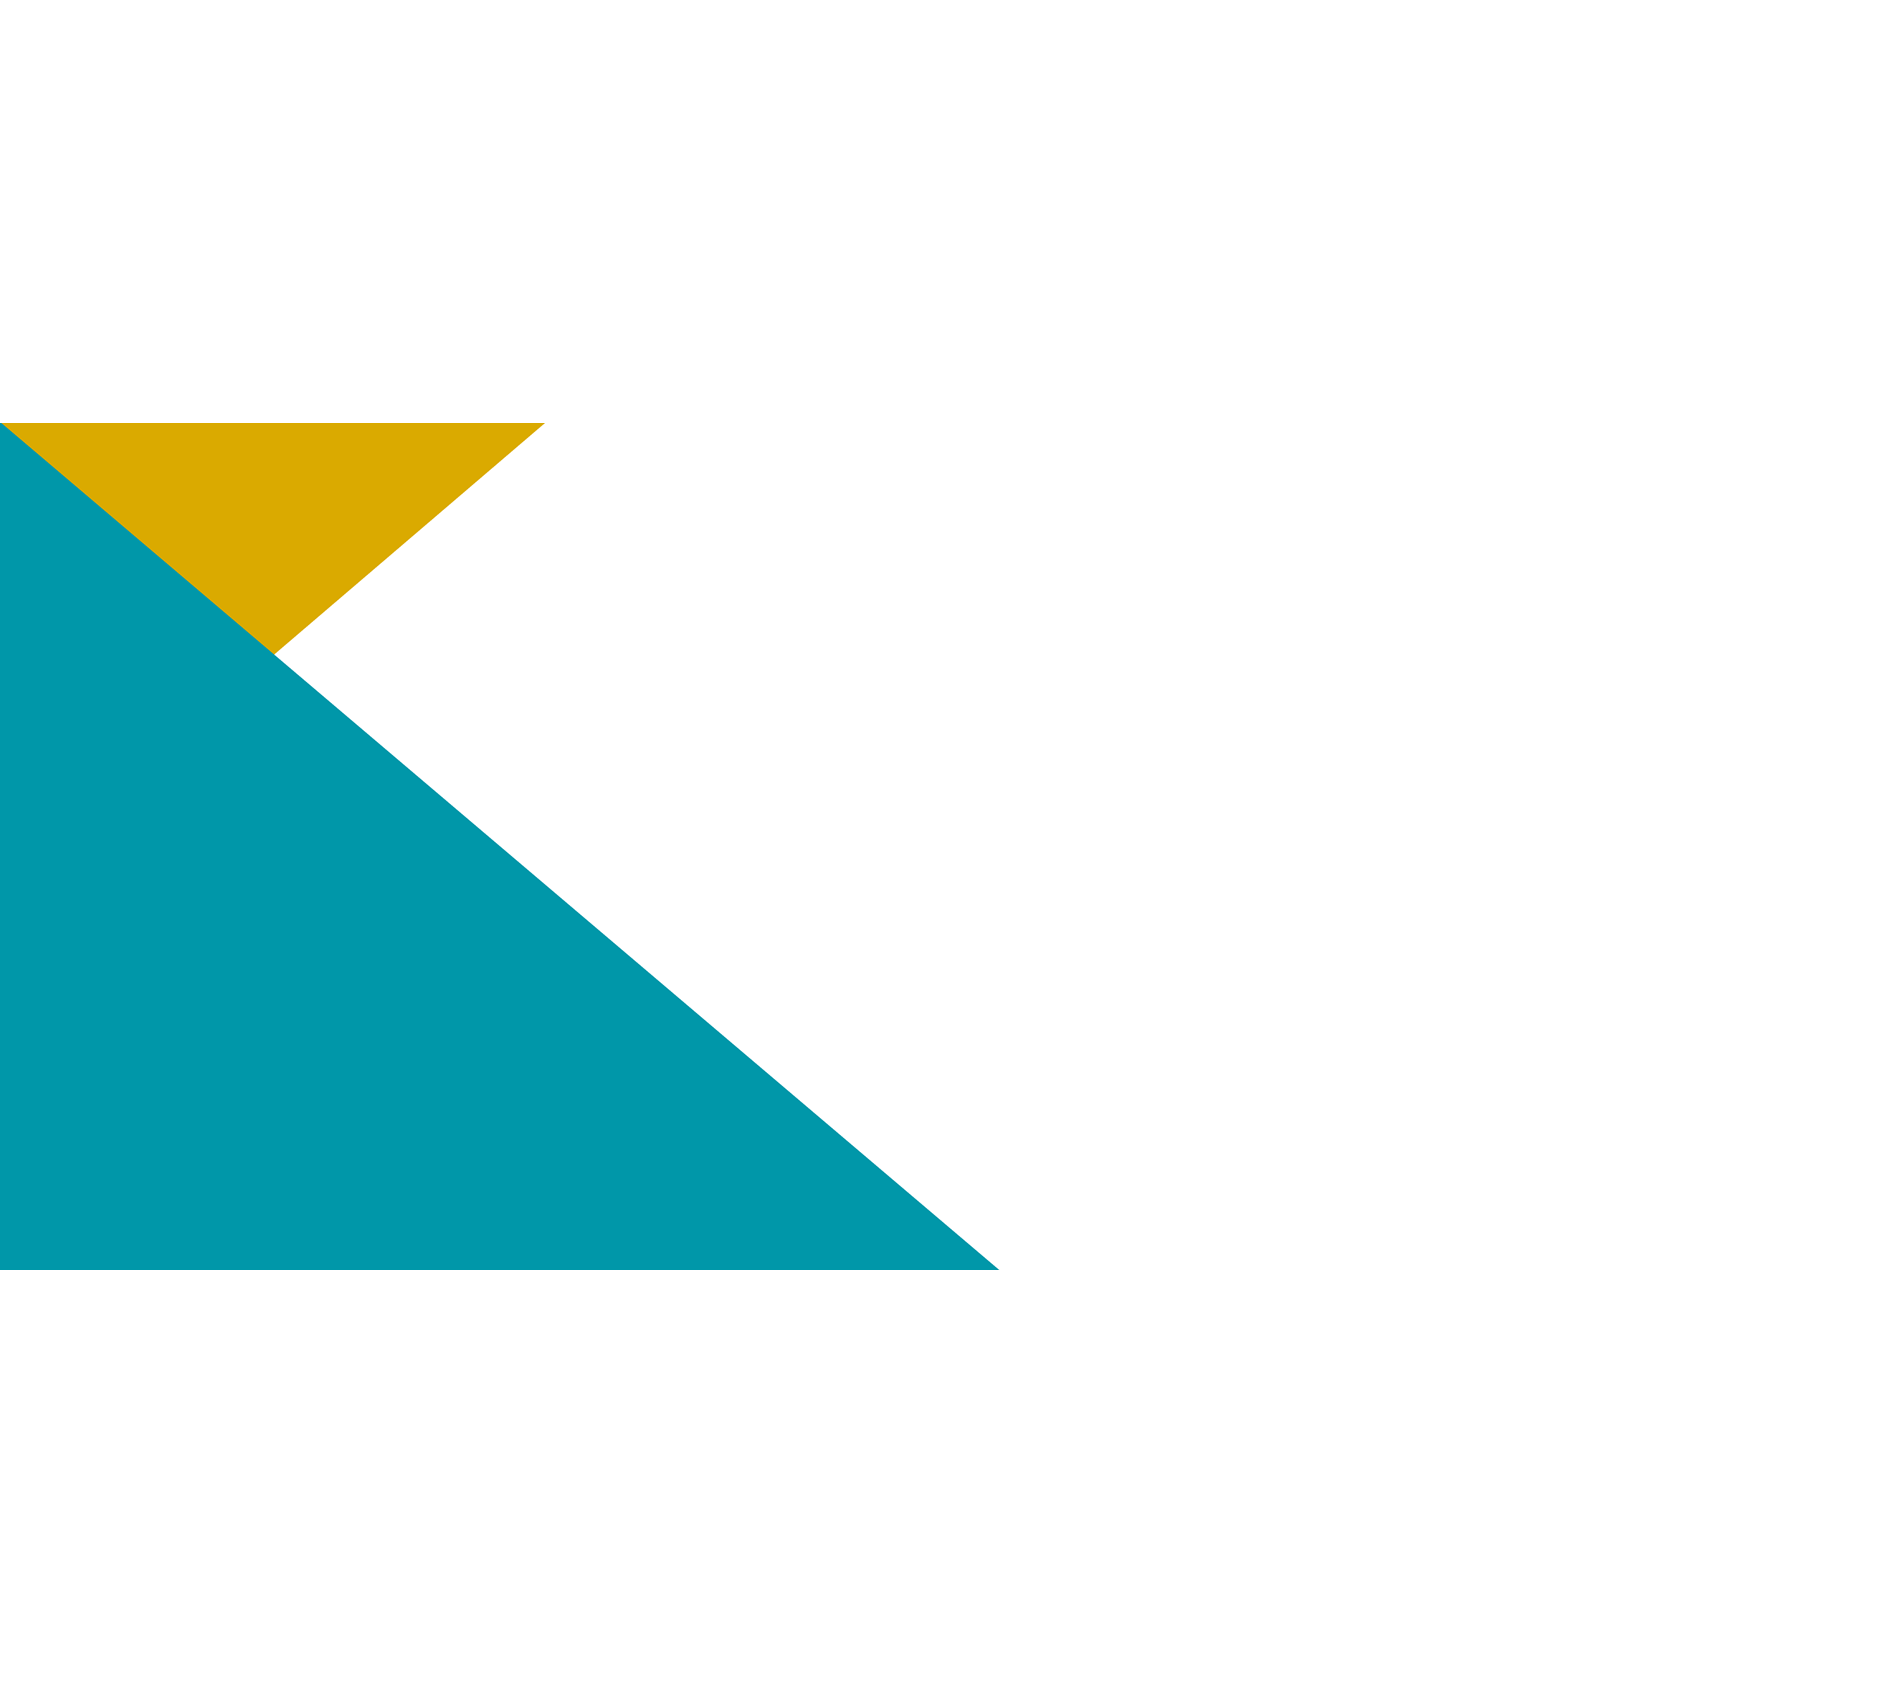 Teal and gold triangle pattern